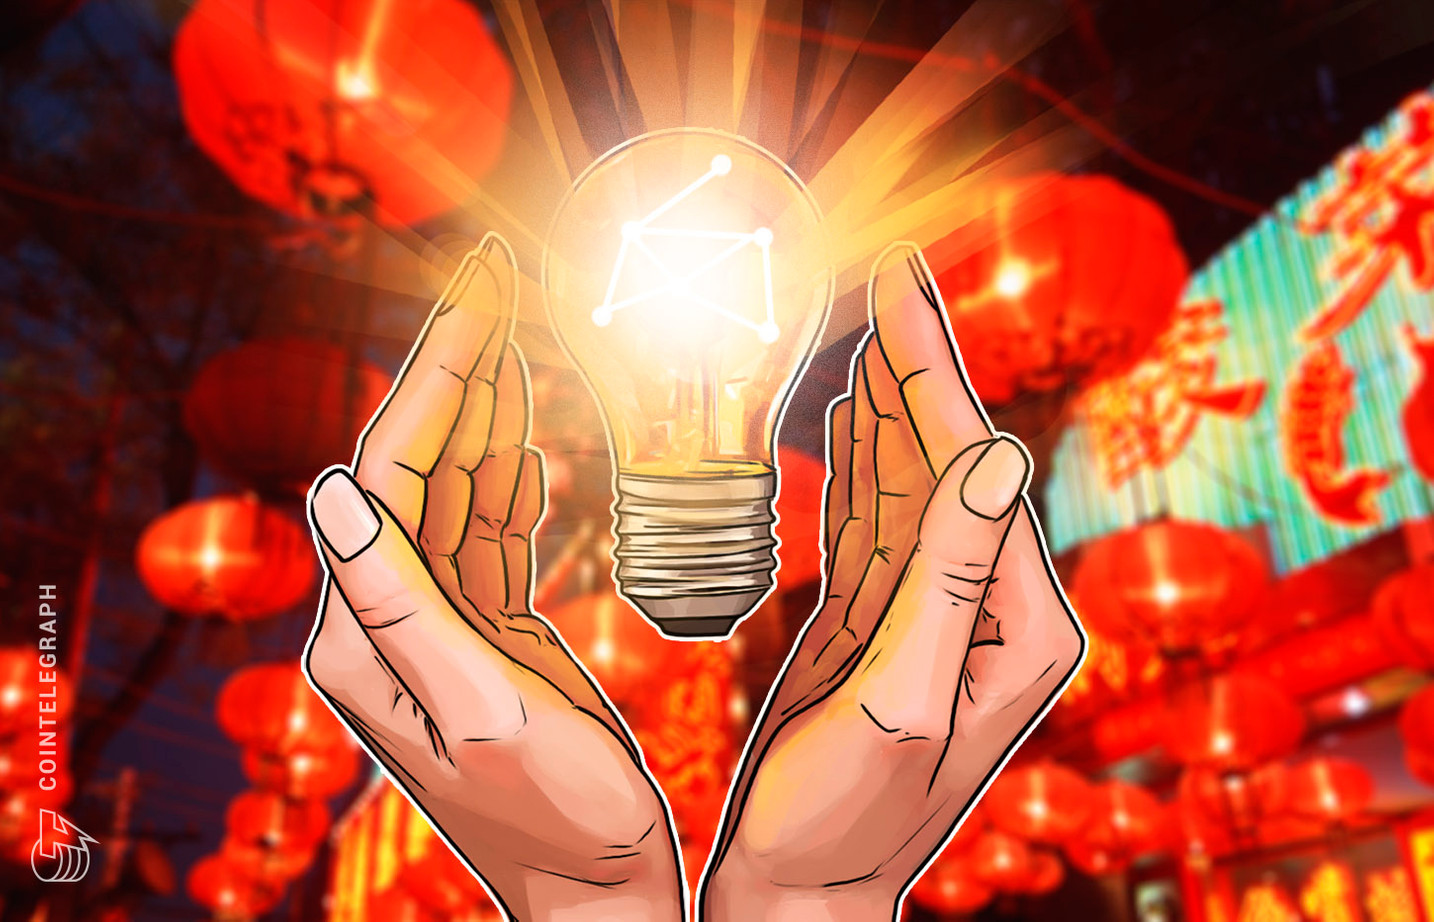 Chinese Research Institute Report Finds Blockchain Can Enhance Financial Services